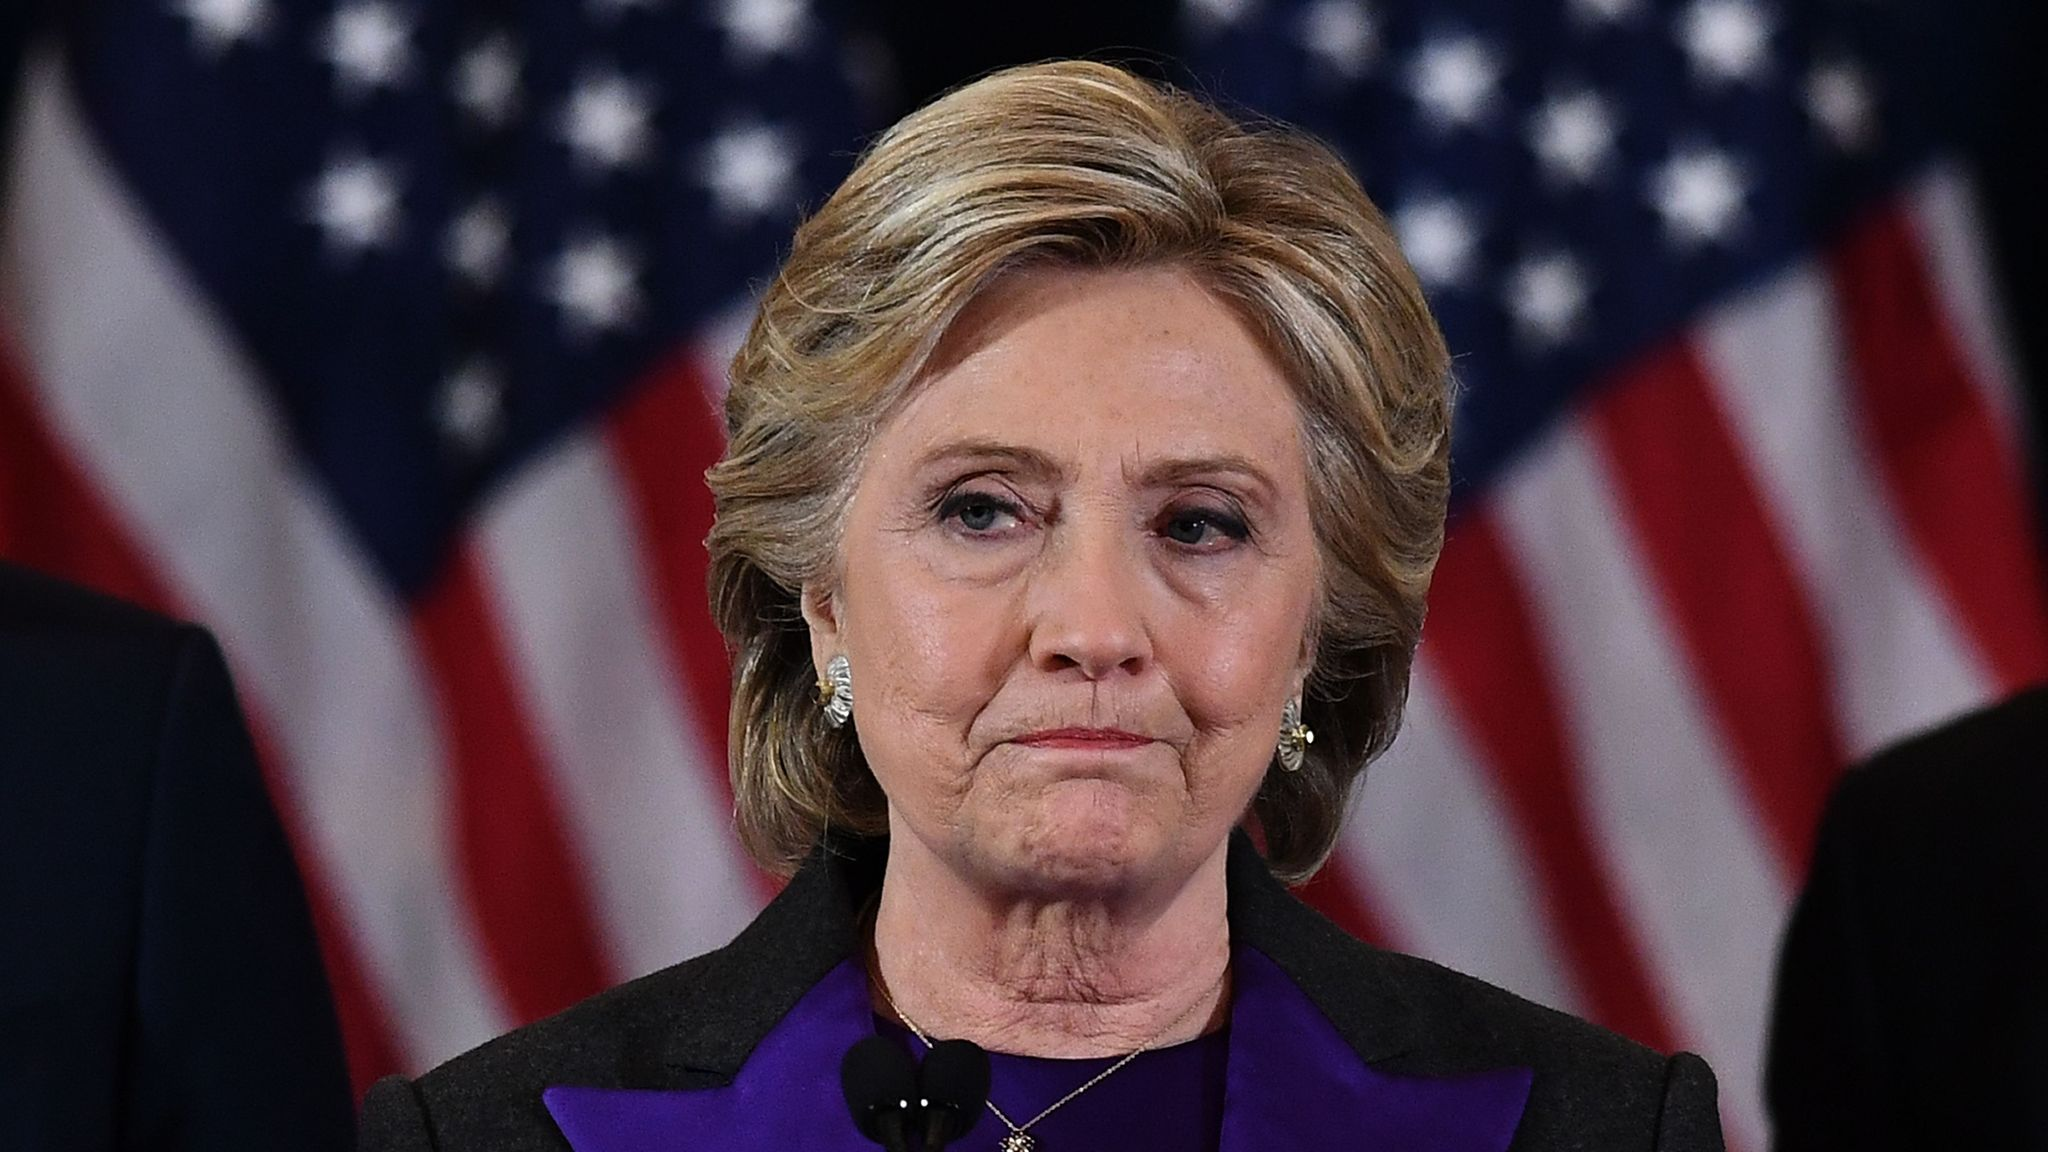 US Democratic presidential candidate Hillary Clinton makes a concession speech after being defeated by Republican president-elect Donald Trump in New York on November 9, 2016. / AFP PHOTO / JEWEL SAMAD (Photo credit should read JEWEL SAMAD/AFP via Getty Images)